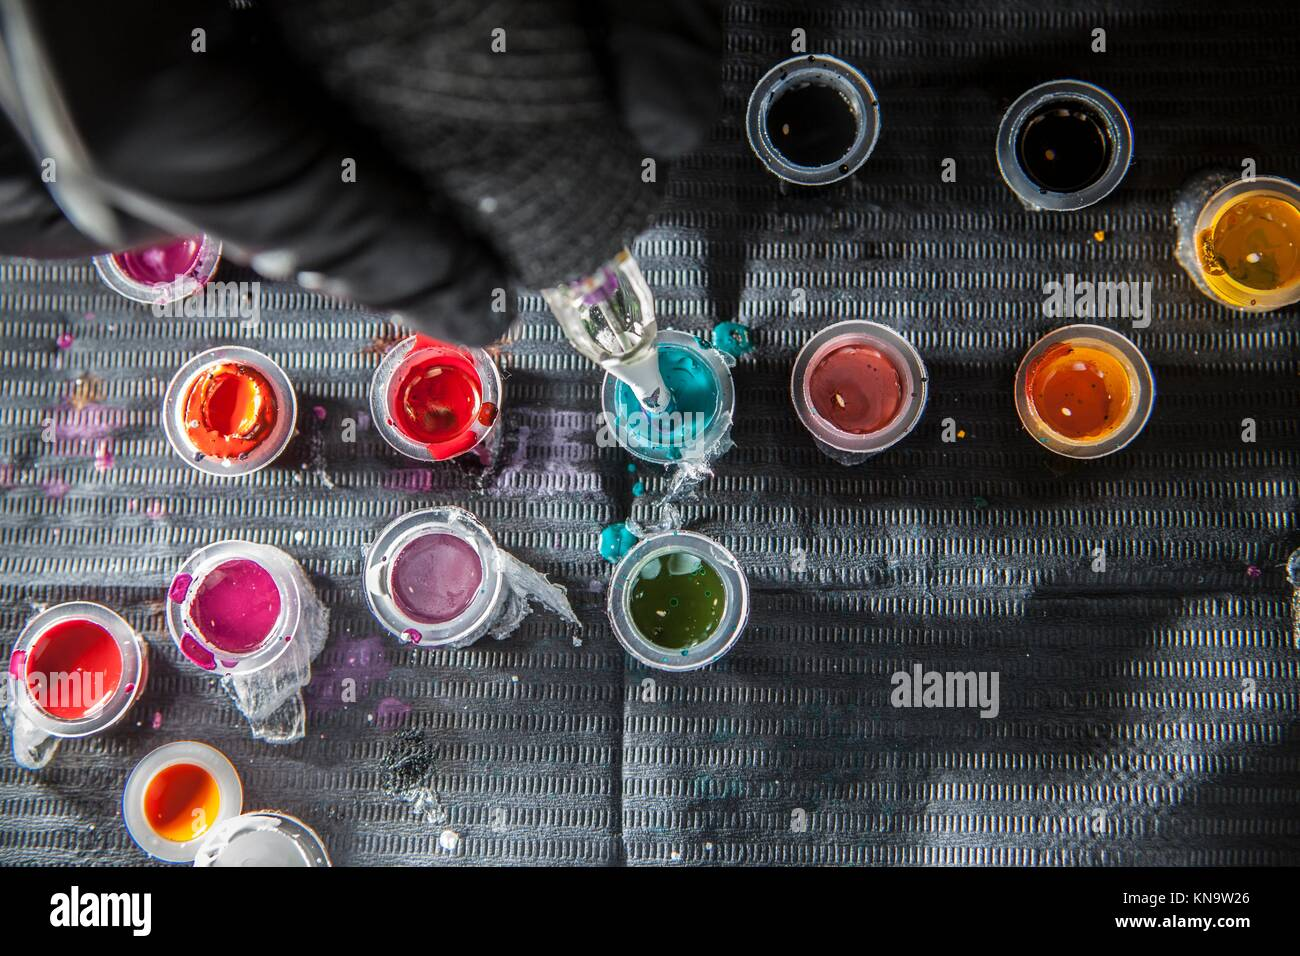 Tattoo artist refilling the pen with blue ink. Overhead shot. - Stock Image